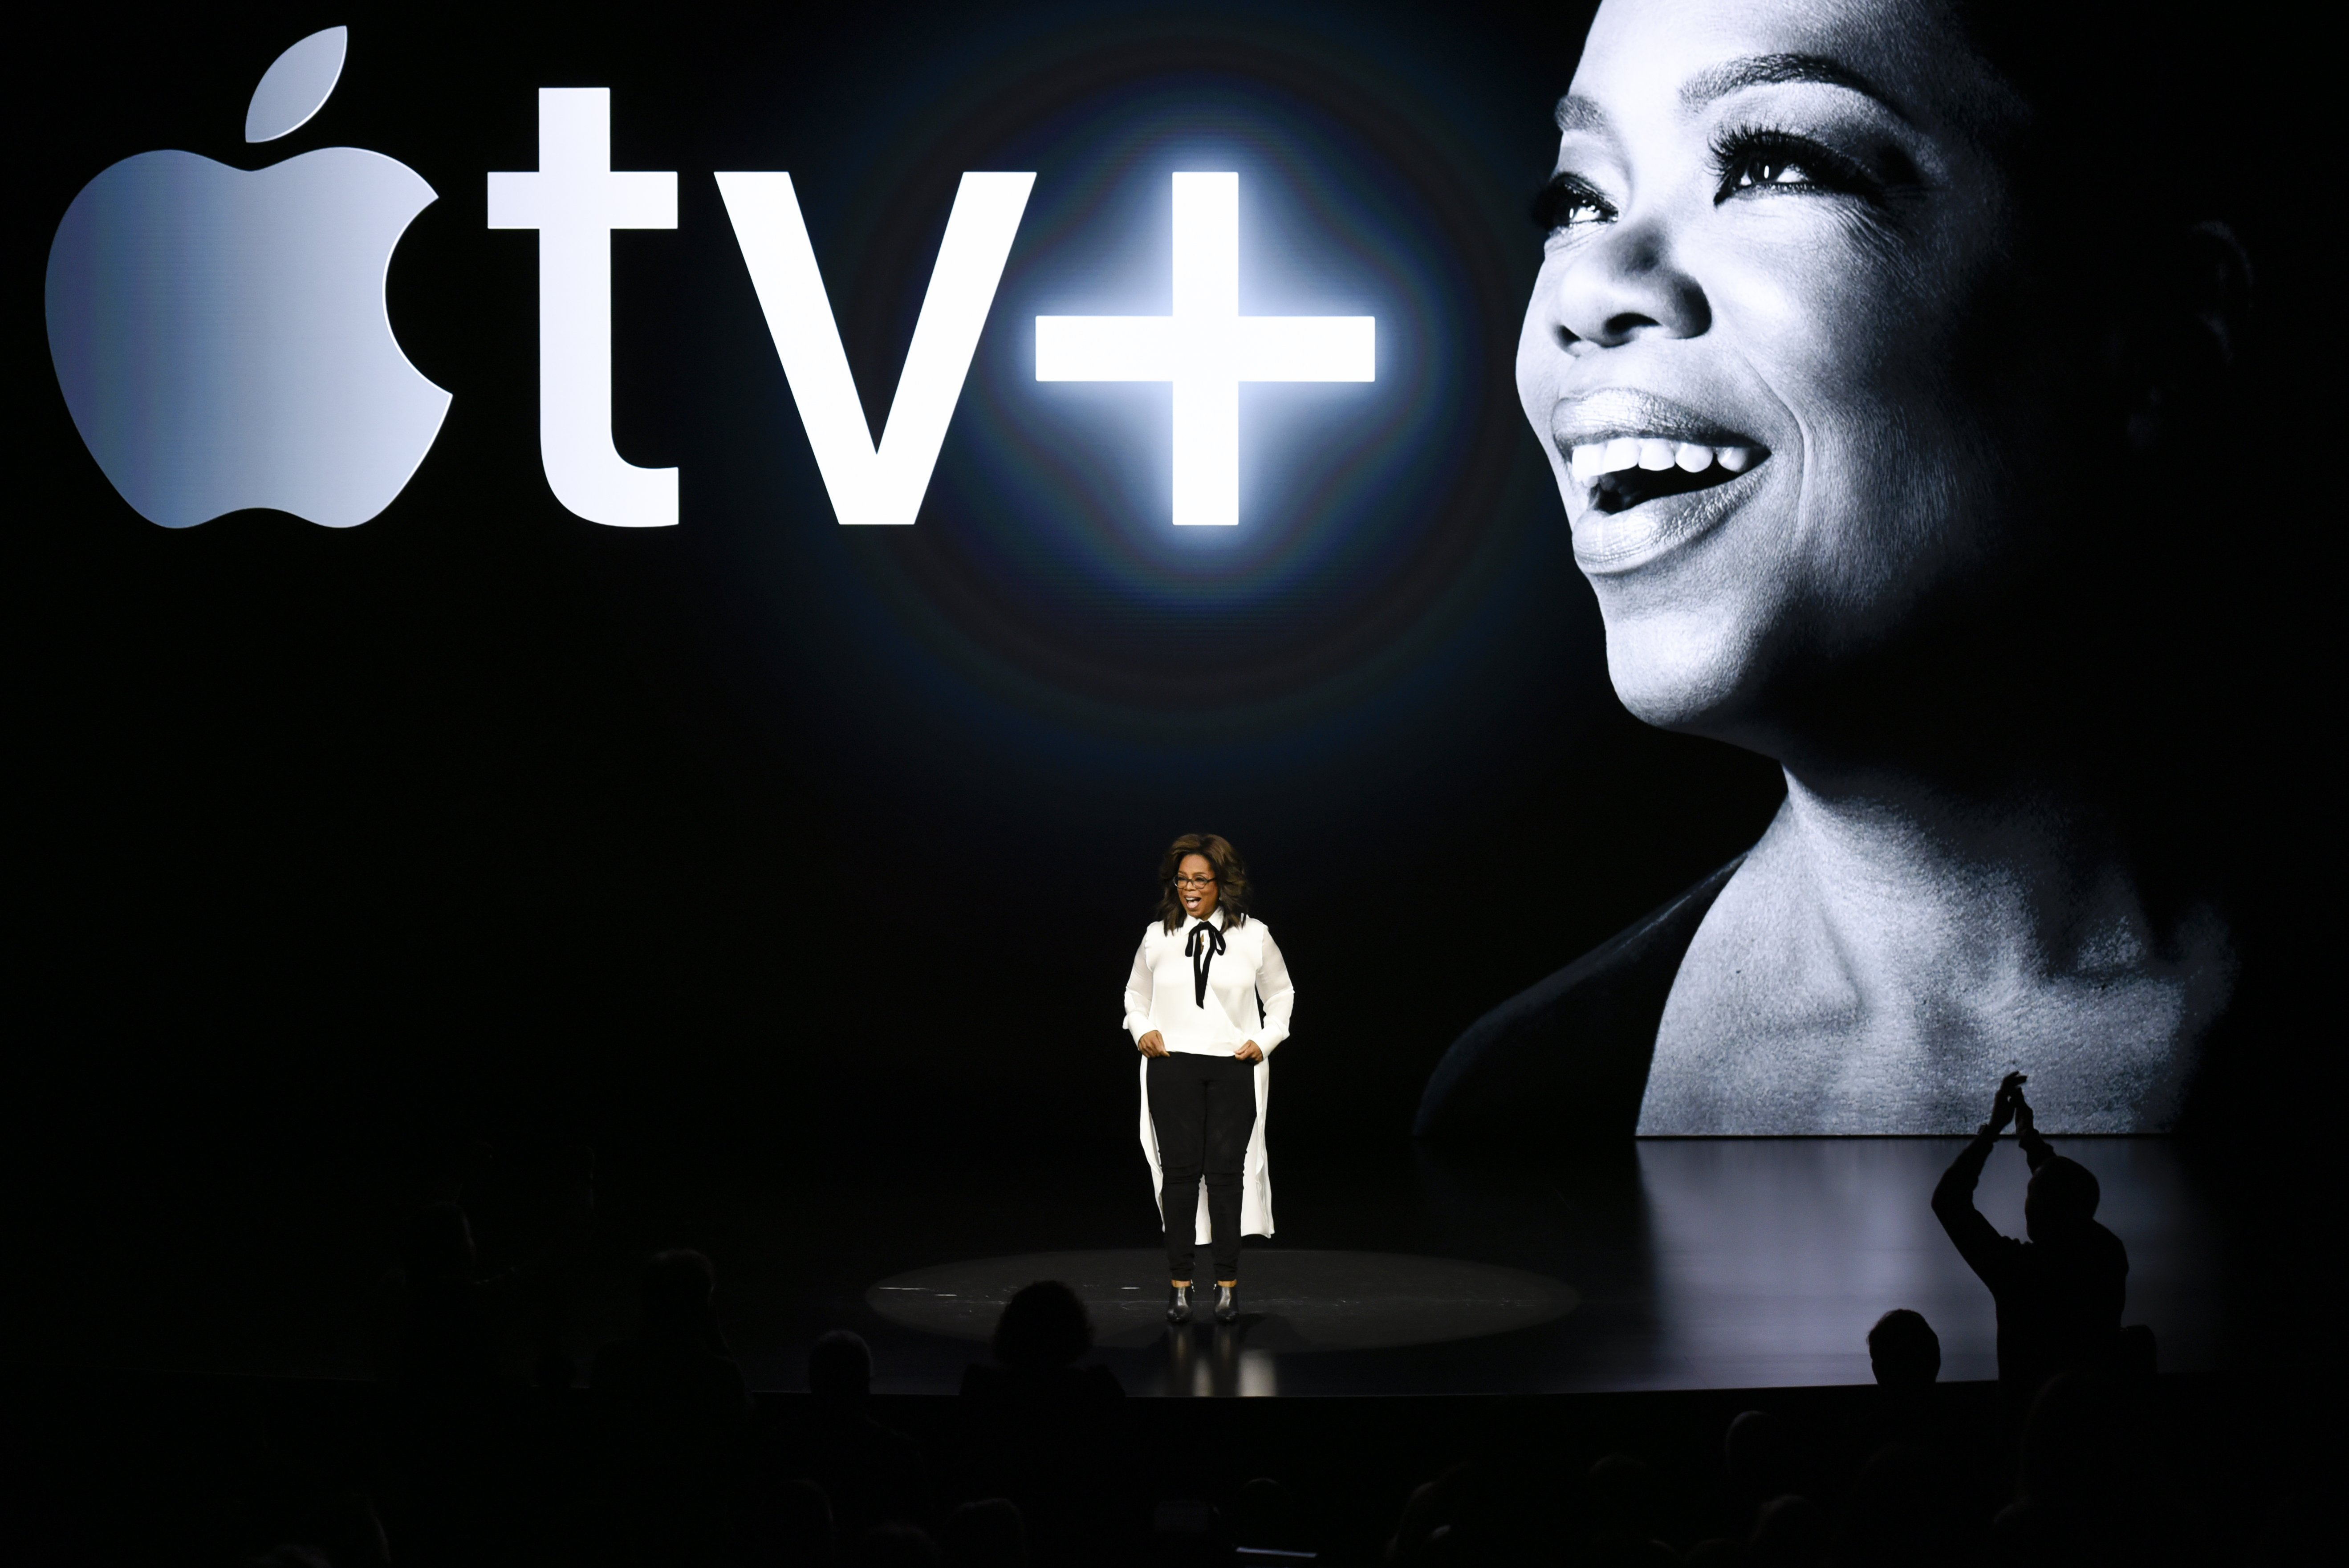 Oprah Winfrey speaks during an Apple product launch event at the Steve Jobs Theater at Apple Park on March 25, 2019 in Cupertino, California | Photo: Getty Images